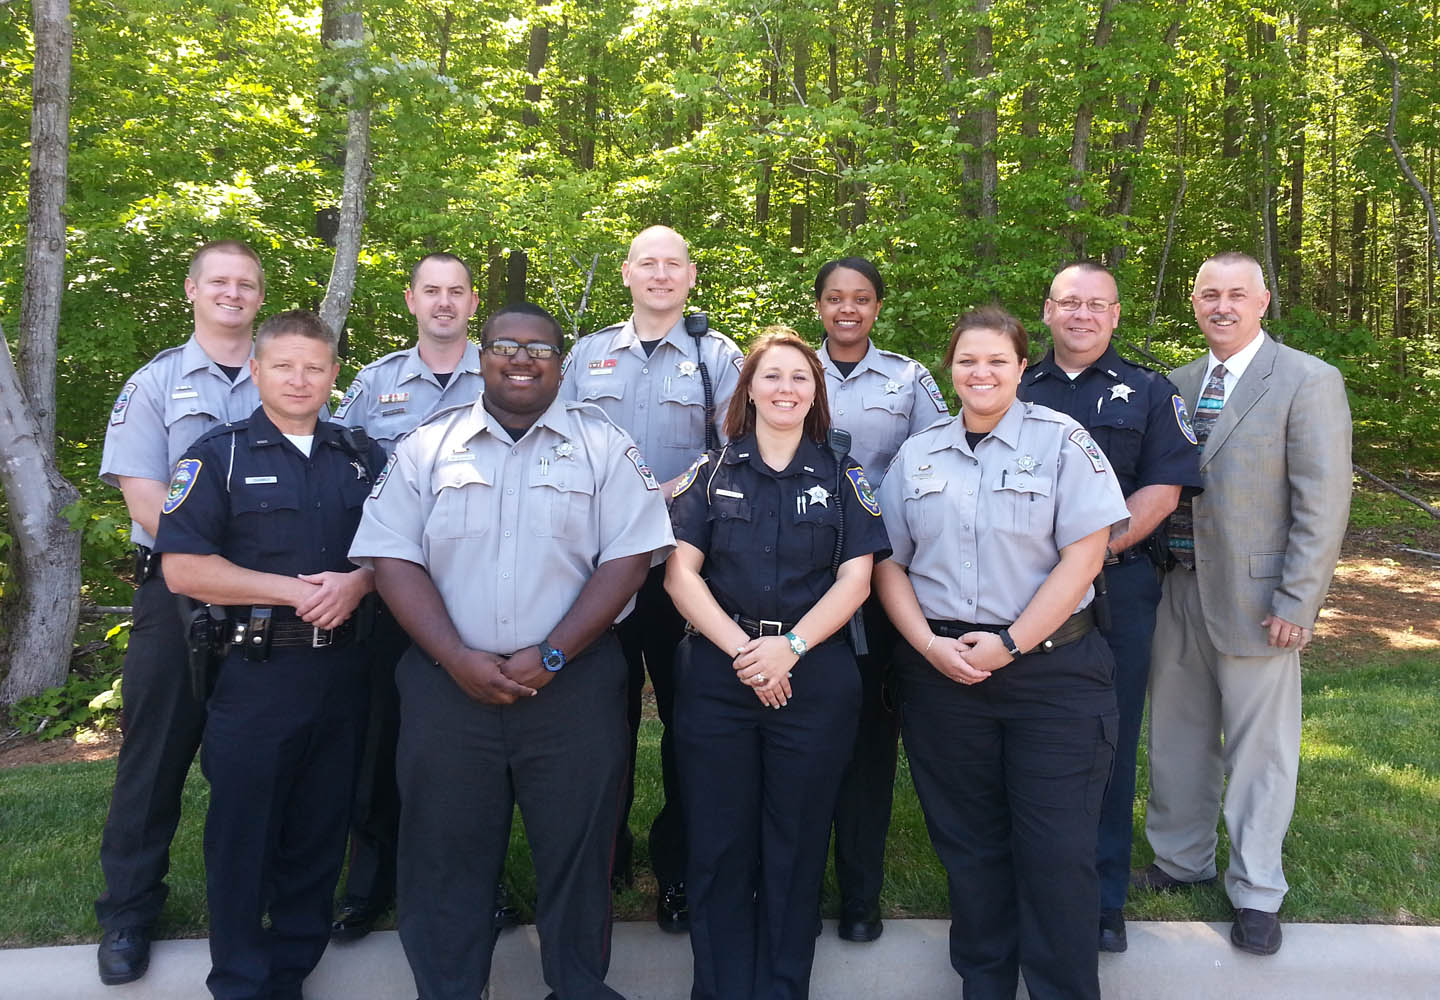 Click to enlarge,  Officers from the Chatham and Randolph counties sheriff offices graduated from Central Carolina Community College's Detention Officer School on Thursday May 8. Pictured (front, from left) are graduates Deputy Steve Shawver, of Randolph; Detention Officer (D.O.) Bradley McKinney, of Chatham; D.O. Tiffany Barringer, of Randolph; and D.O. Abby Howard, from Chatham; and (back row, from left) D.O. Reid Kirkman, Lt. Brandon Jones, Lt. Erik Lindley, and D.O. Brittany Caddell, all of Chatham; D.O. David McNeill, of Randolph; and Detention Officer School Director Capt. Doug Stuart, Chatham County Sheriff's Office. The graduates received 168 hours of instruction in the 23-day program. The course concluded with the state exam and certification, on which the officers attained an average score of 89.2.  For more information about the Detention Officer School, contact Larry Foster, CCCC's Emergency Services Training Center Law Enforcement coordinator, at 919-777-7772 or by email at lfoster@cccc.edu.